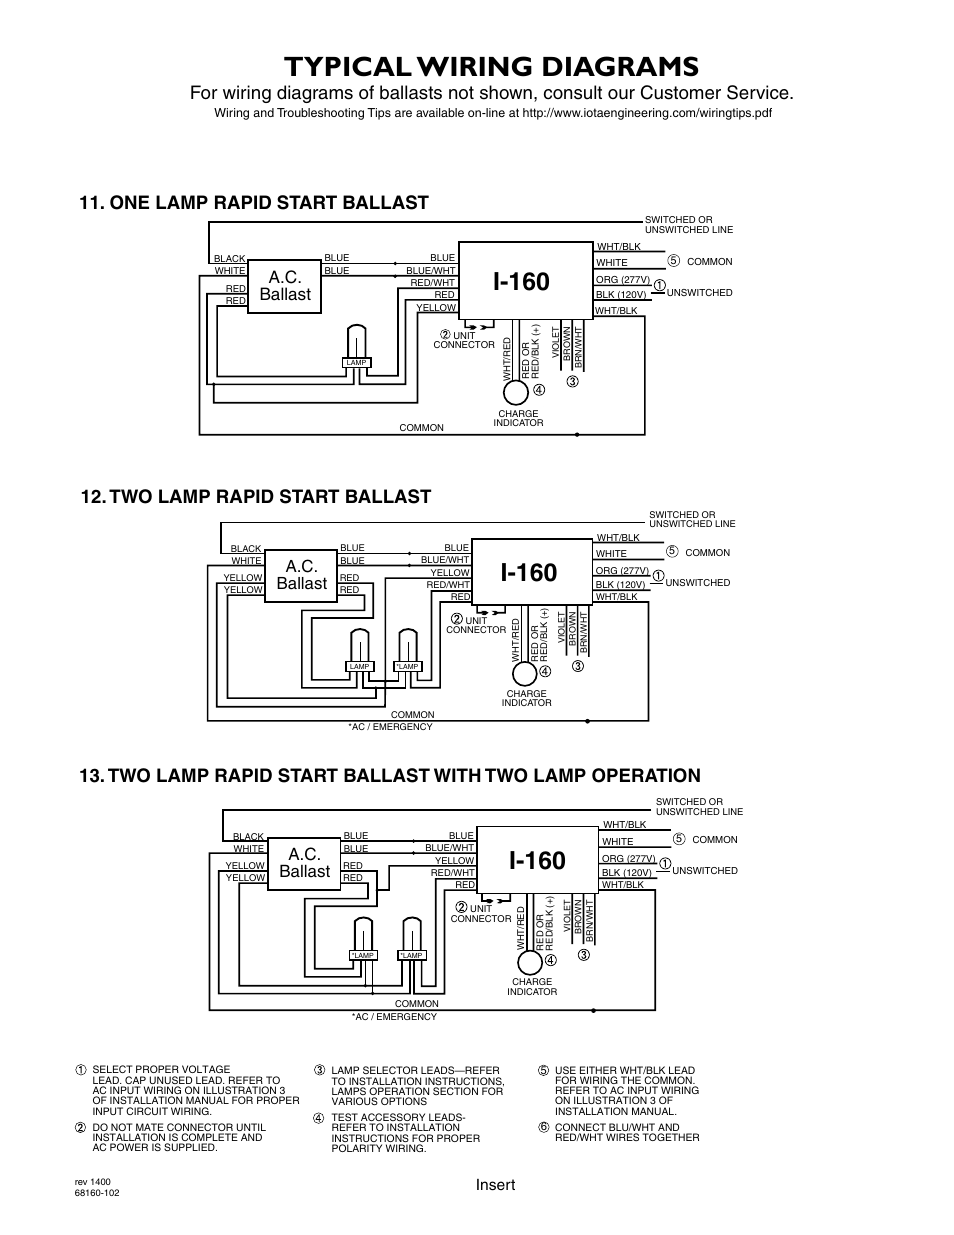 hight resolution of typical wiring diagrams i 160 a c ballast iota i 160 user manual page 5 5